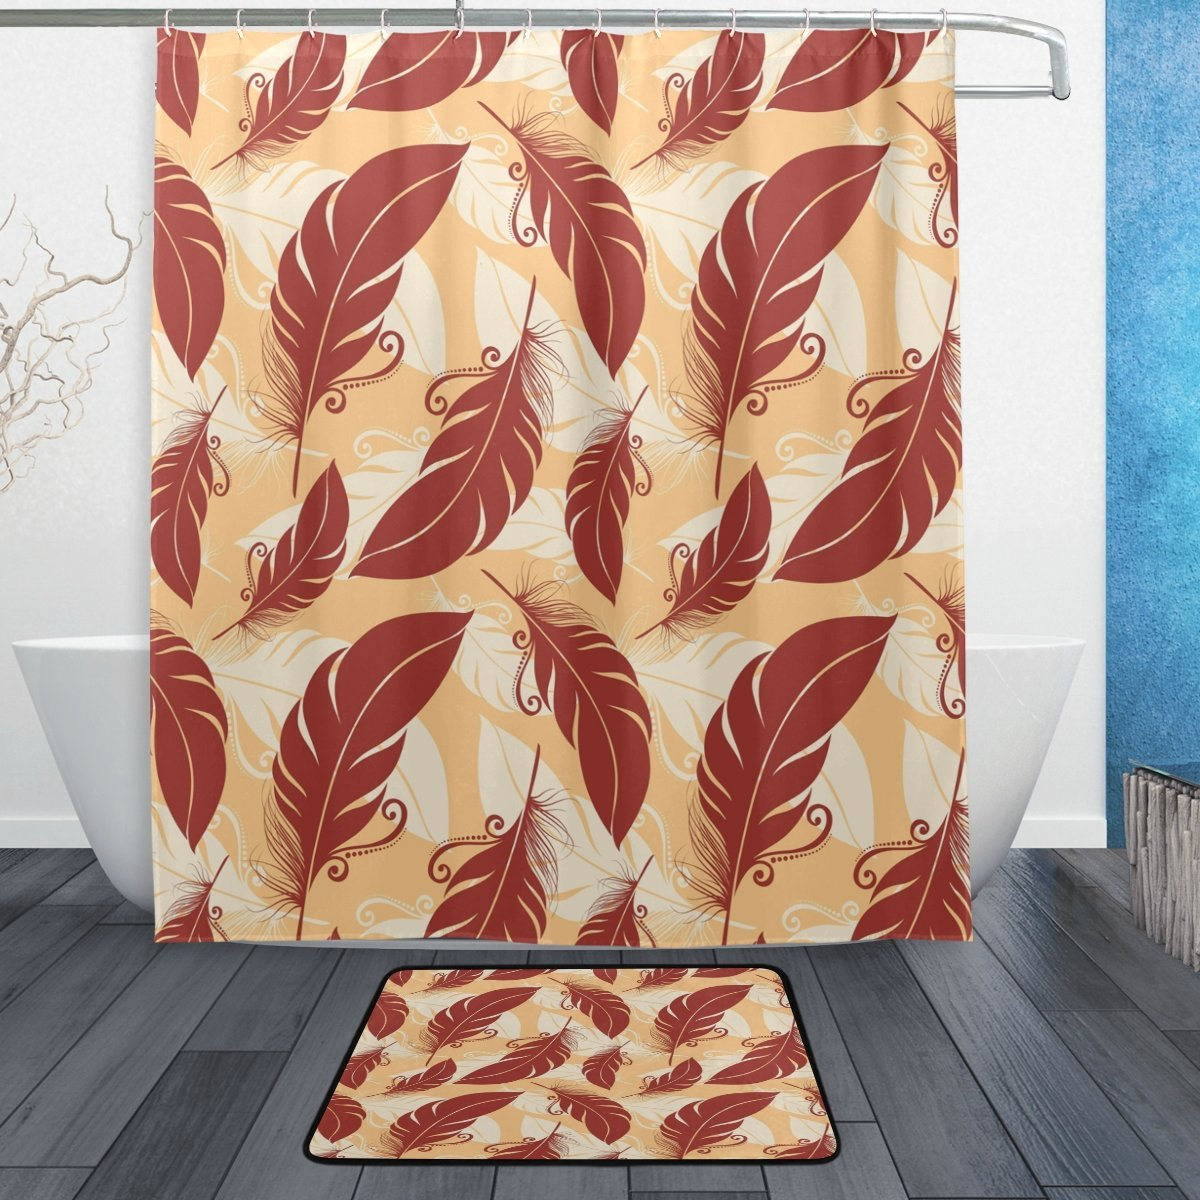 Vintage Abstract Feather Waterproof Polyester Fabric Shower Curtain with Hooks Doormat Bath Bathroom Home Decor